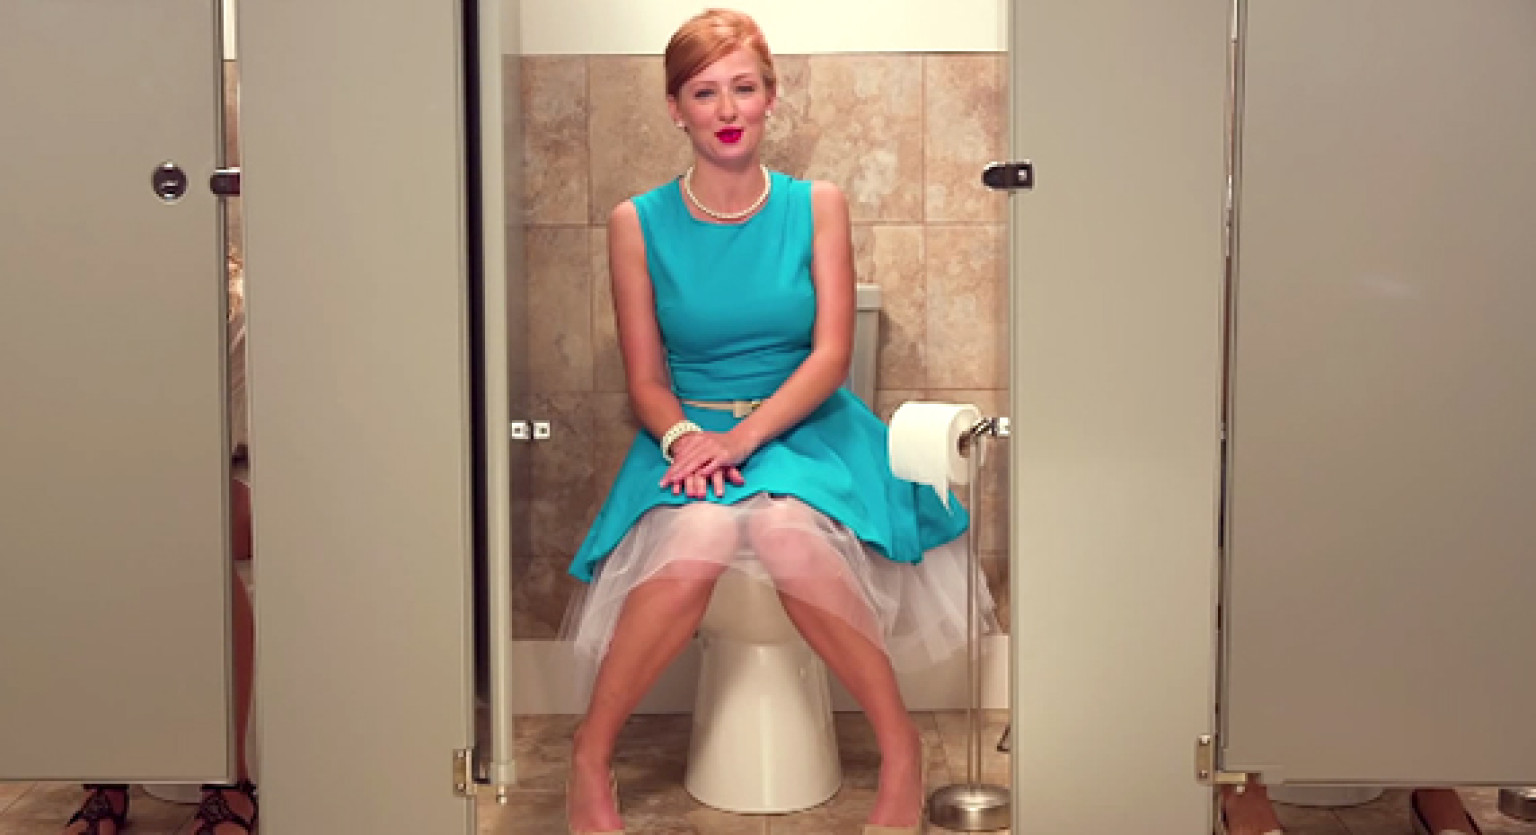 Girls poop in clear panties sexy gifs than expected!